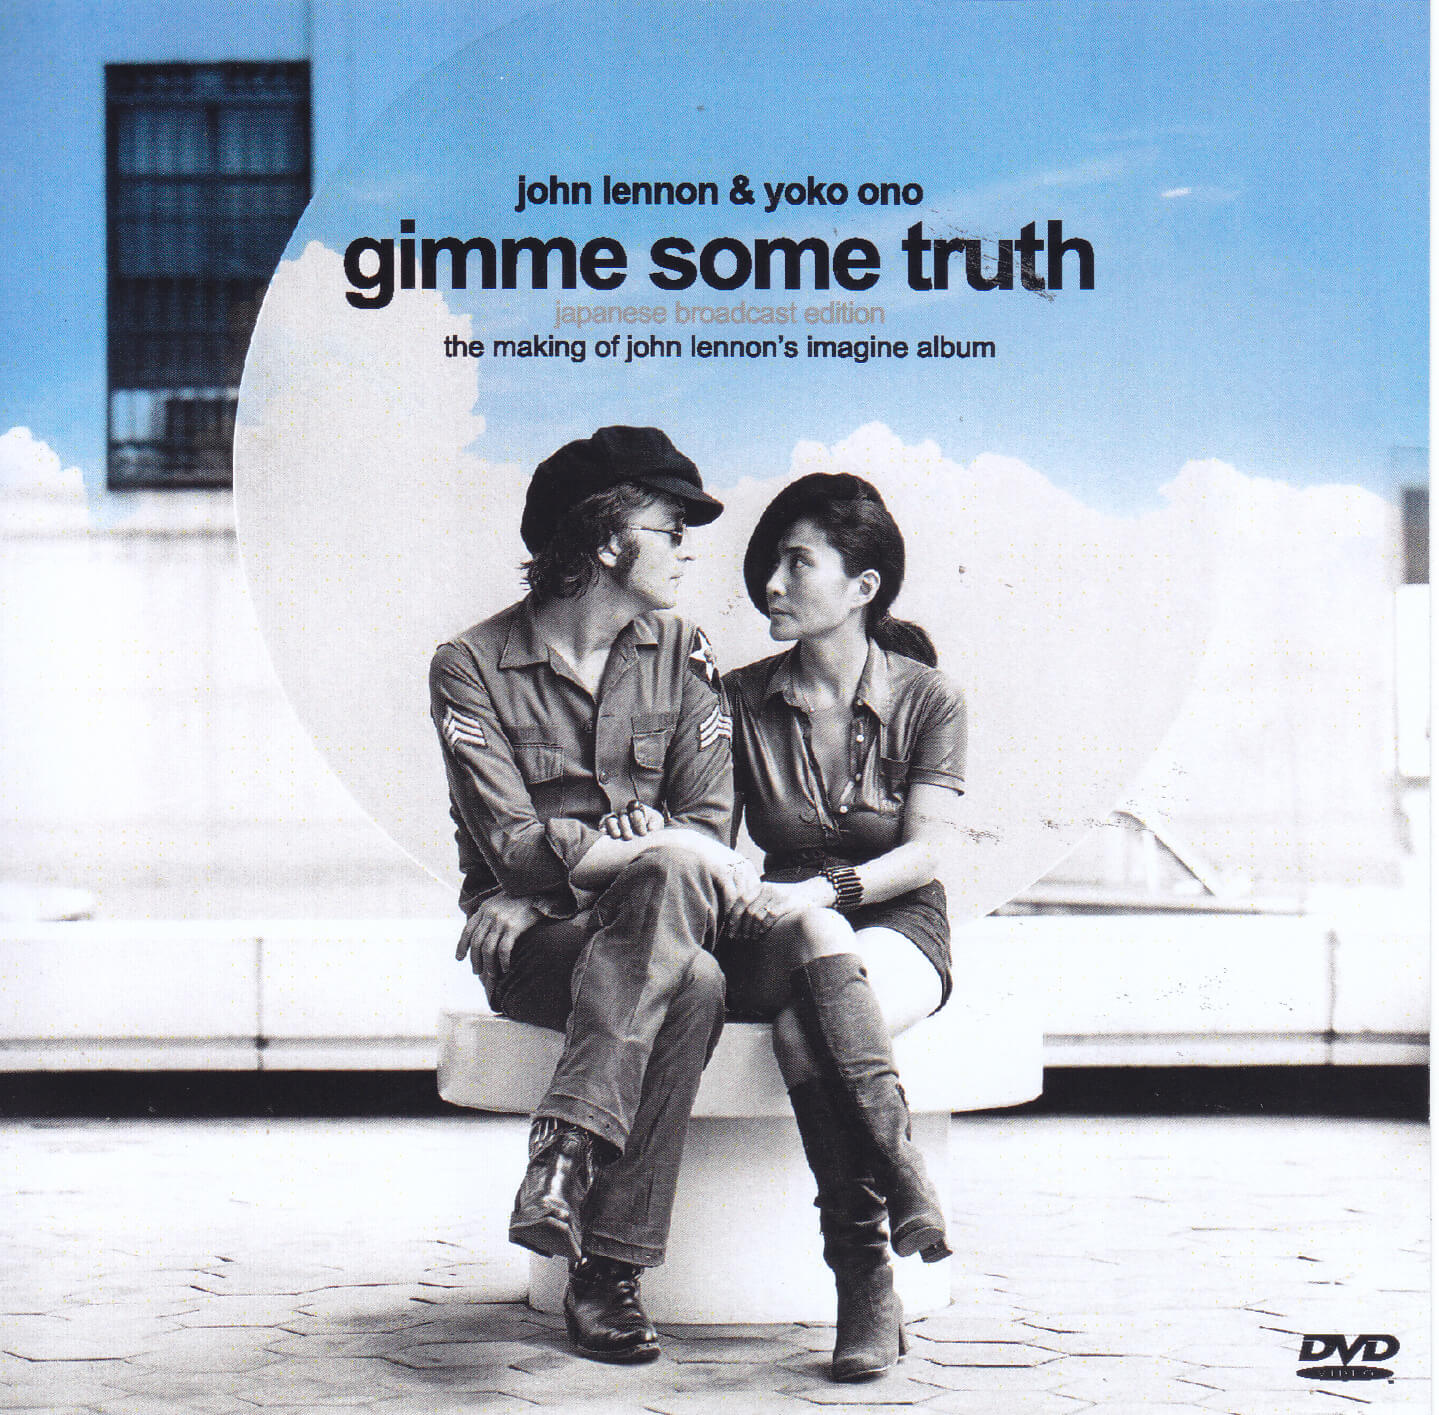 John Lennon Yoko Ono Gimme Some Truth Japanese Broascast Edition 1single Dvdr Non Label Discjapan